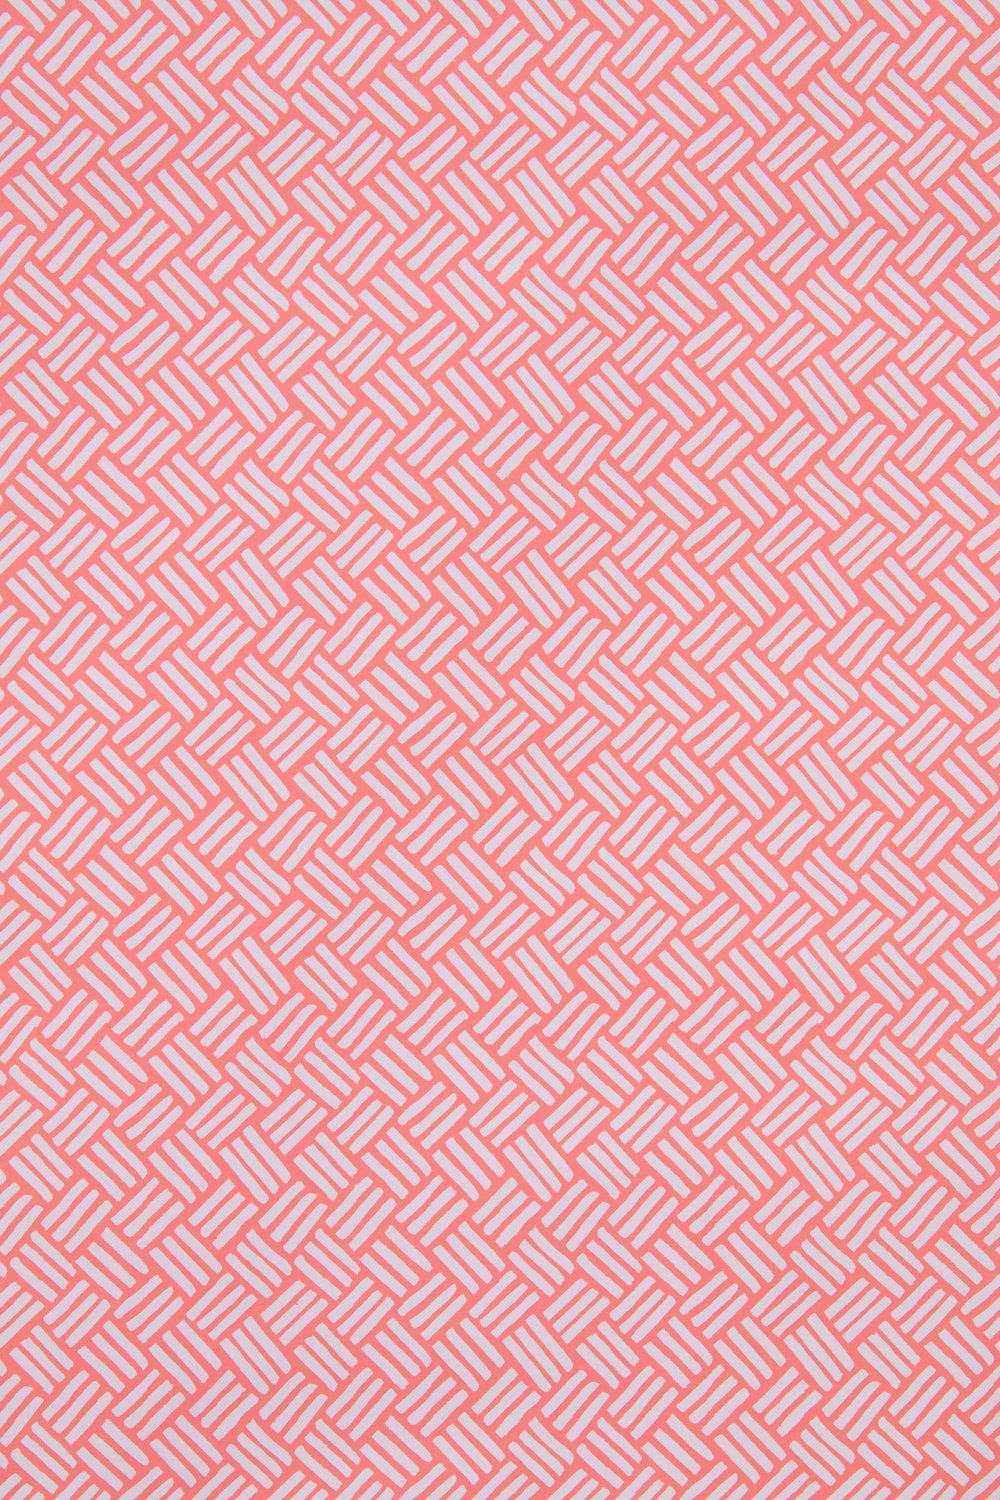 Coral Pink